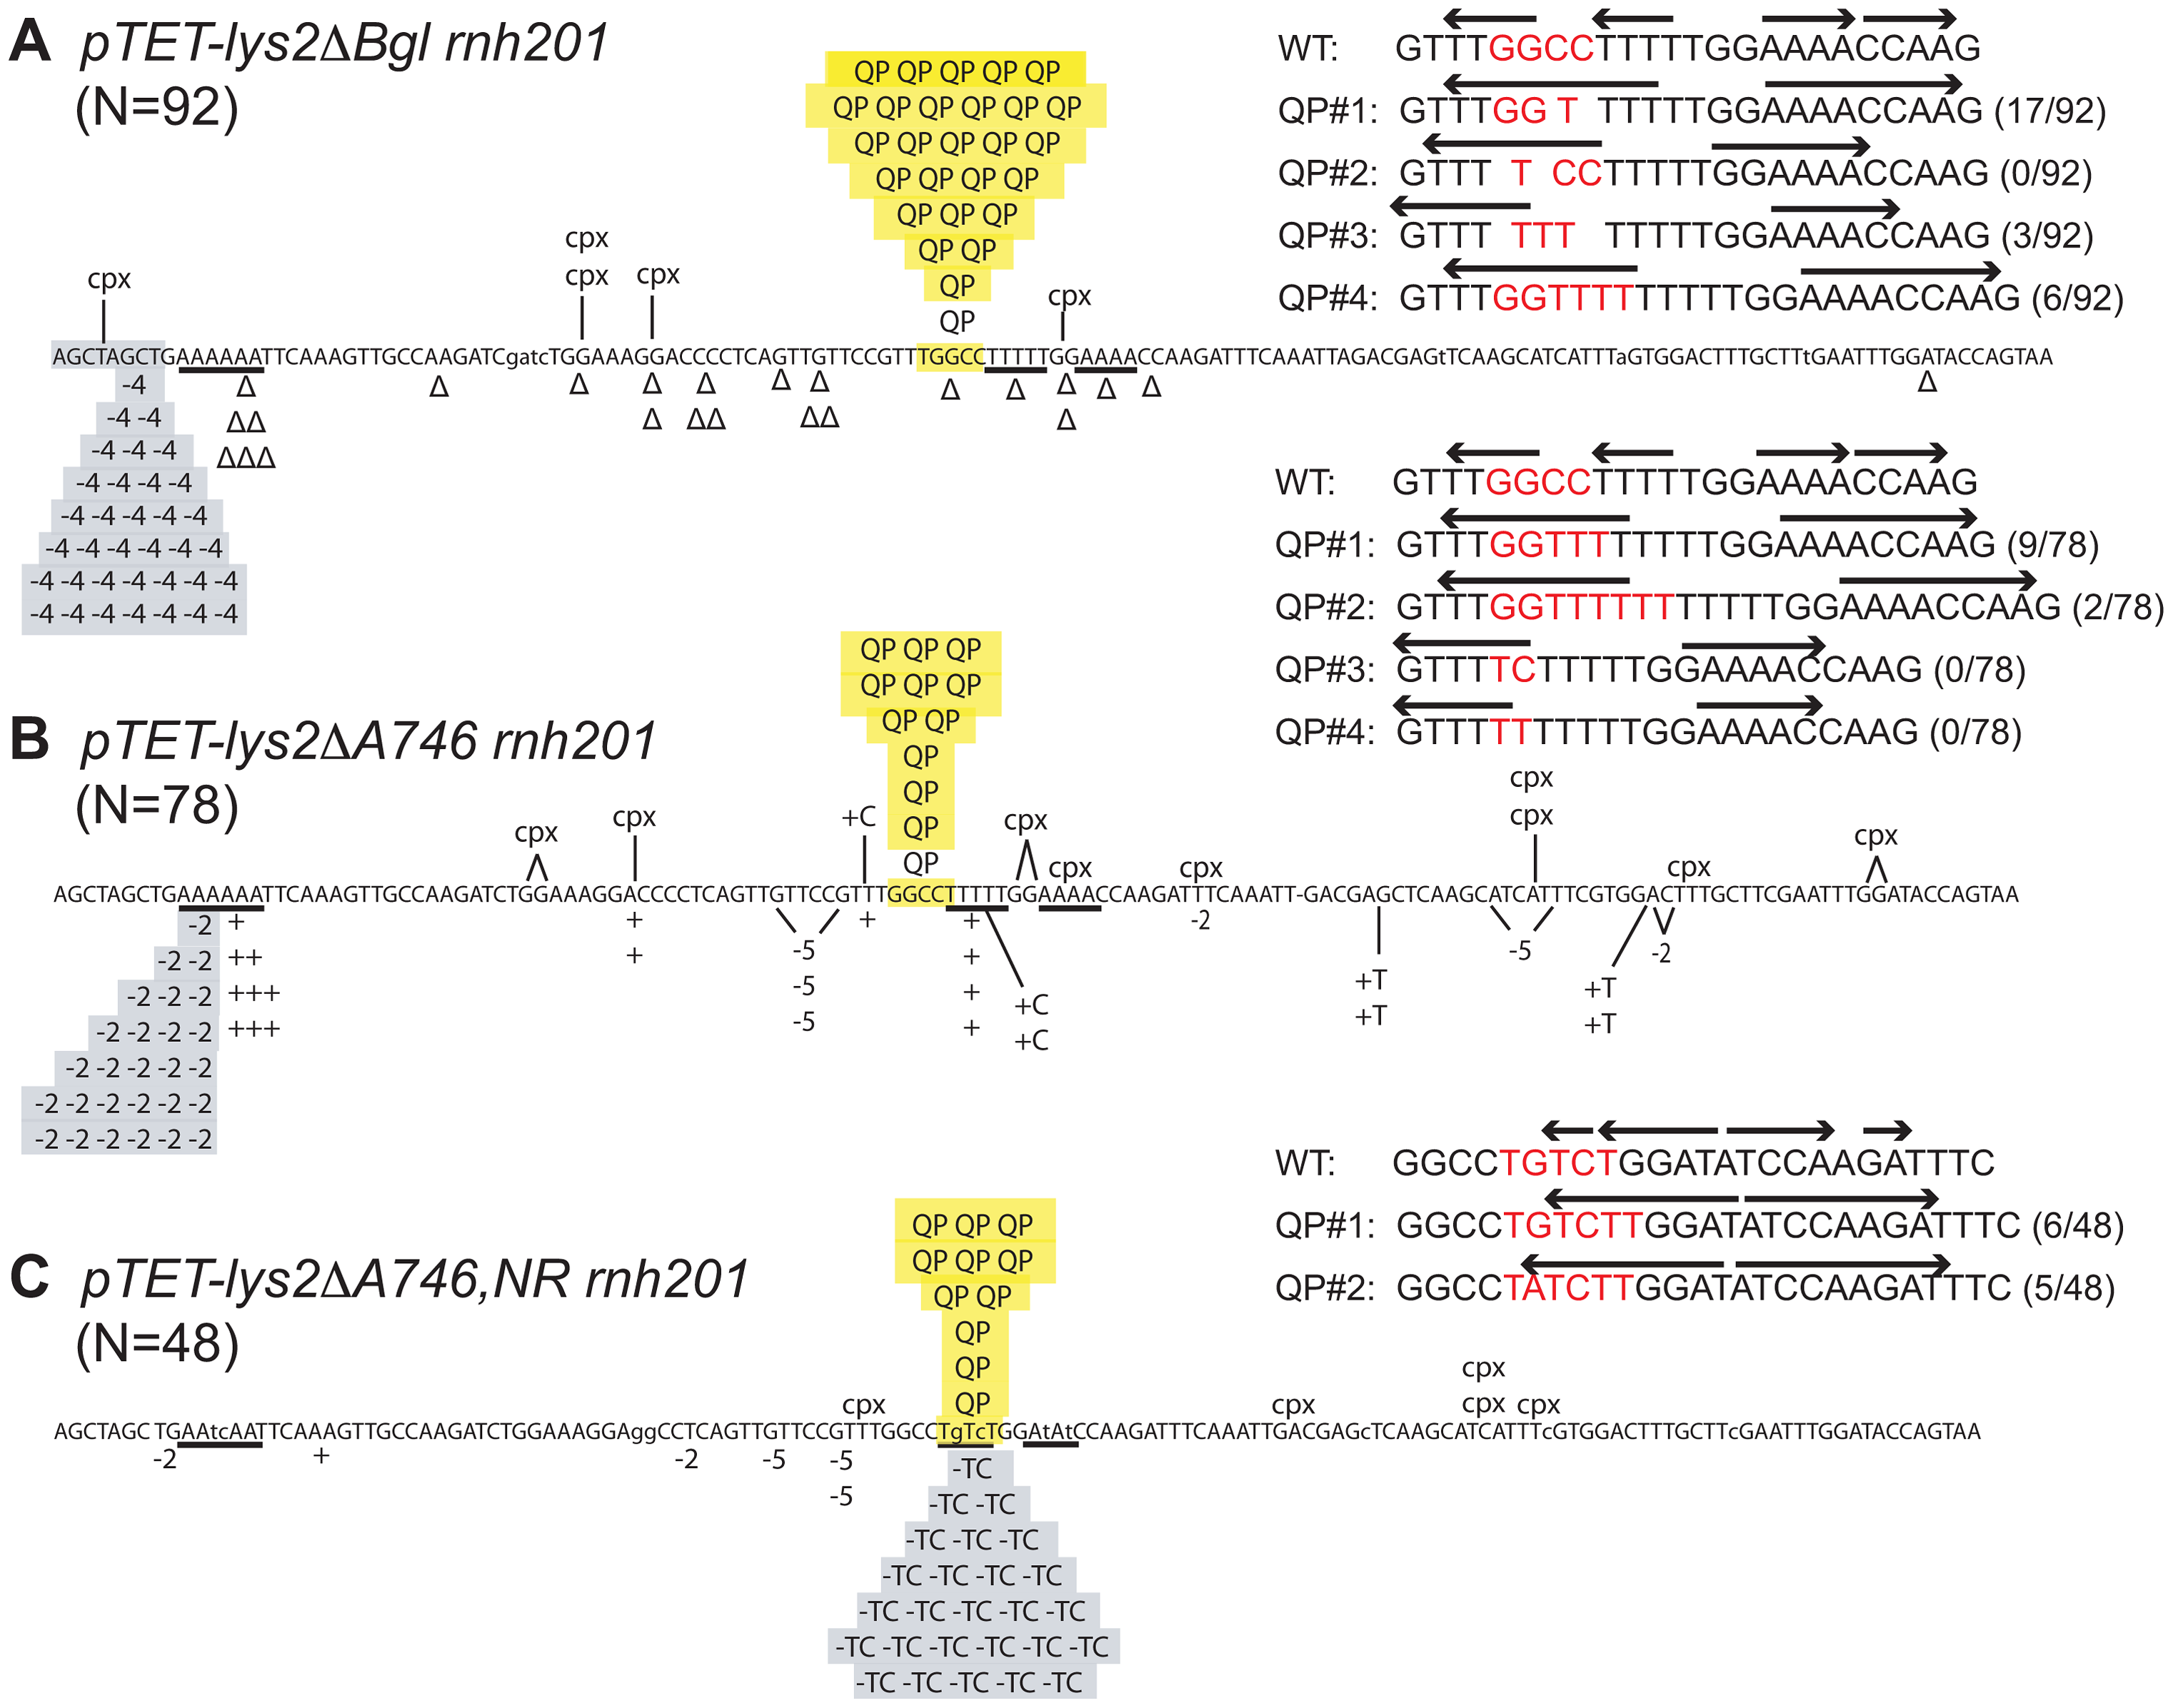 Reversion spectra in <i>rnh201Δ</i> backgrounds under high-transcription conditions.